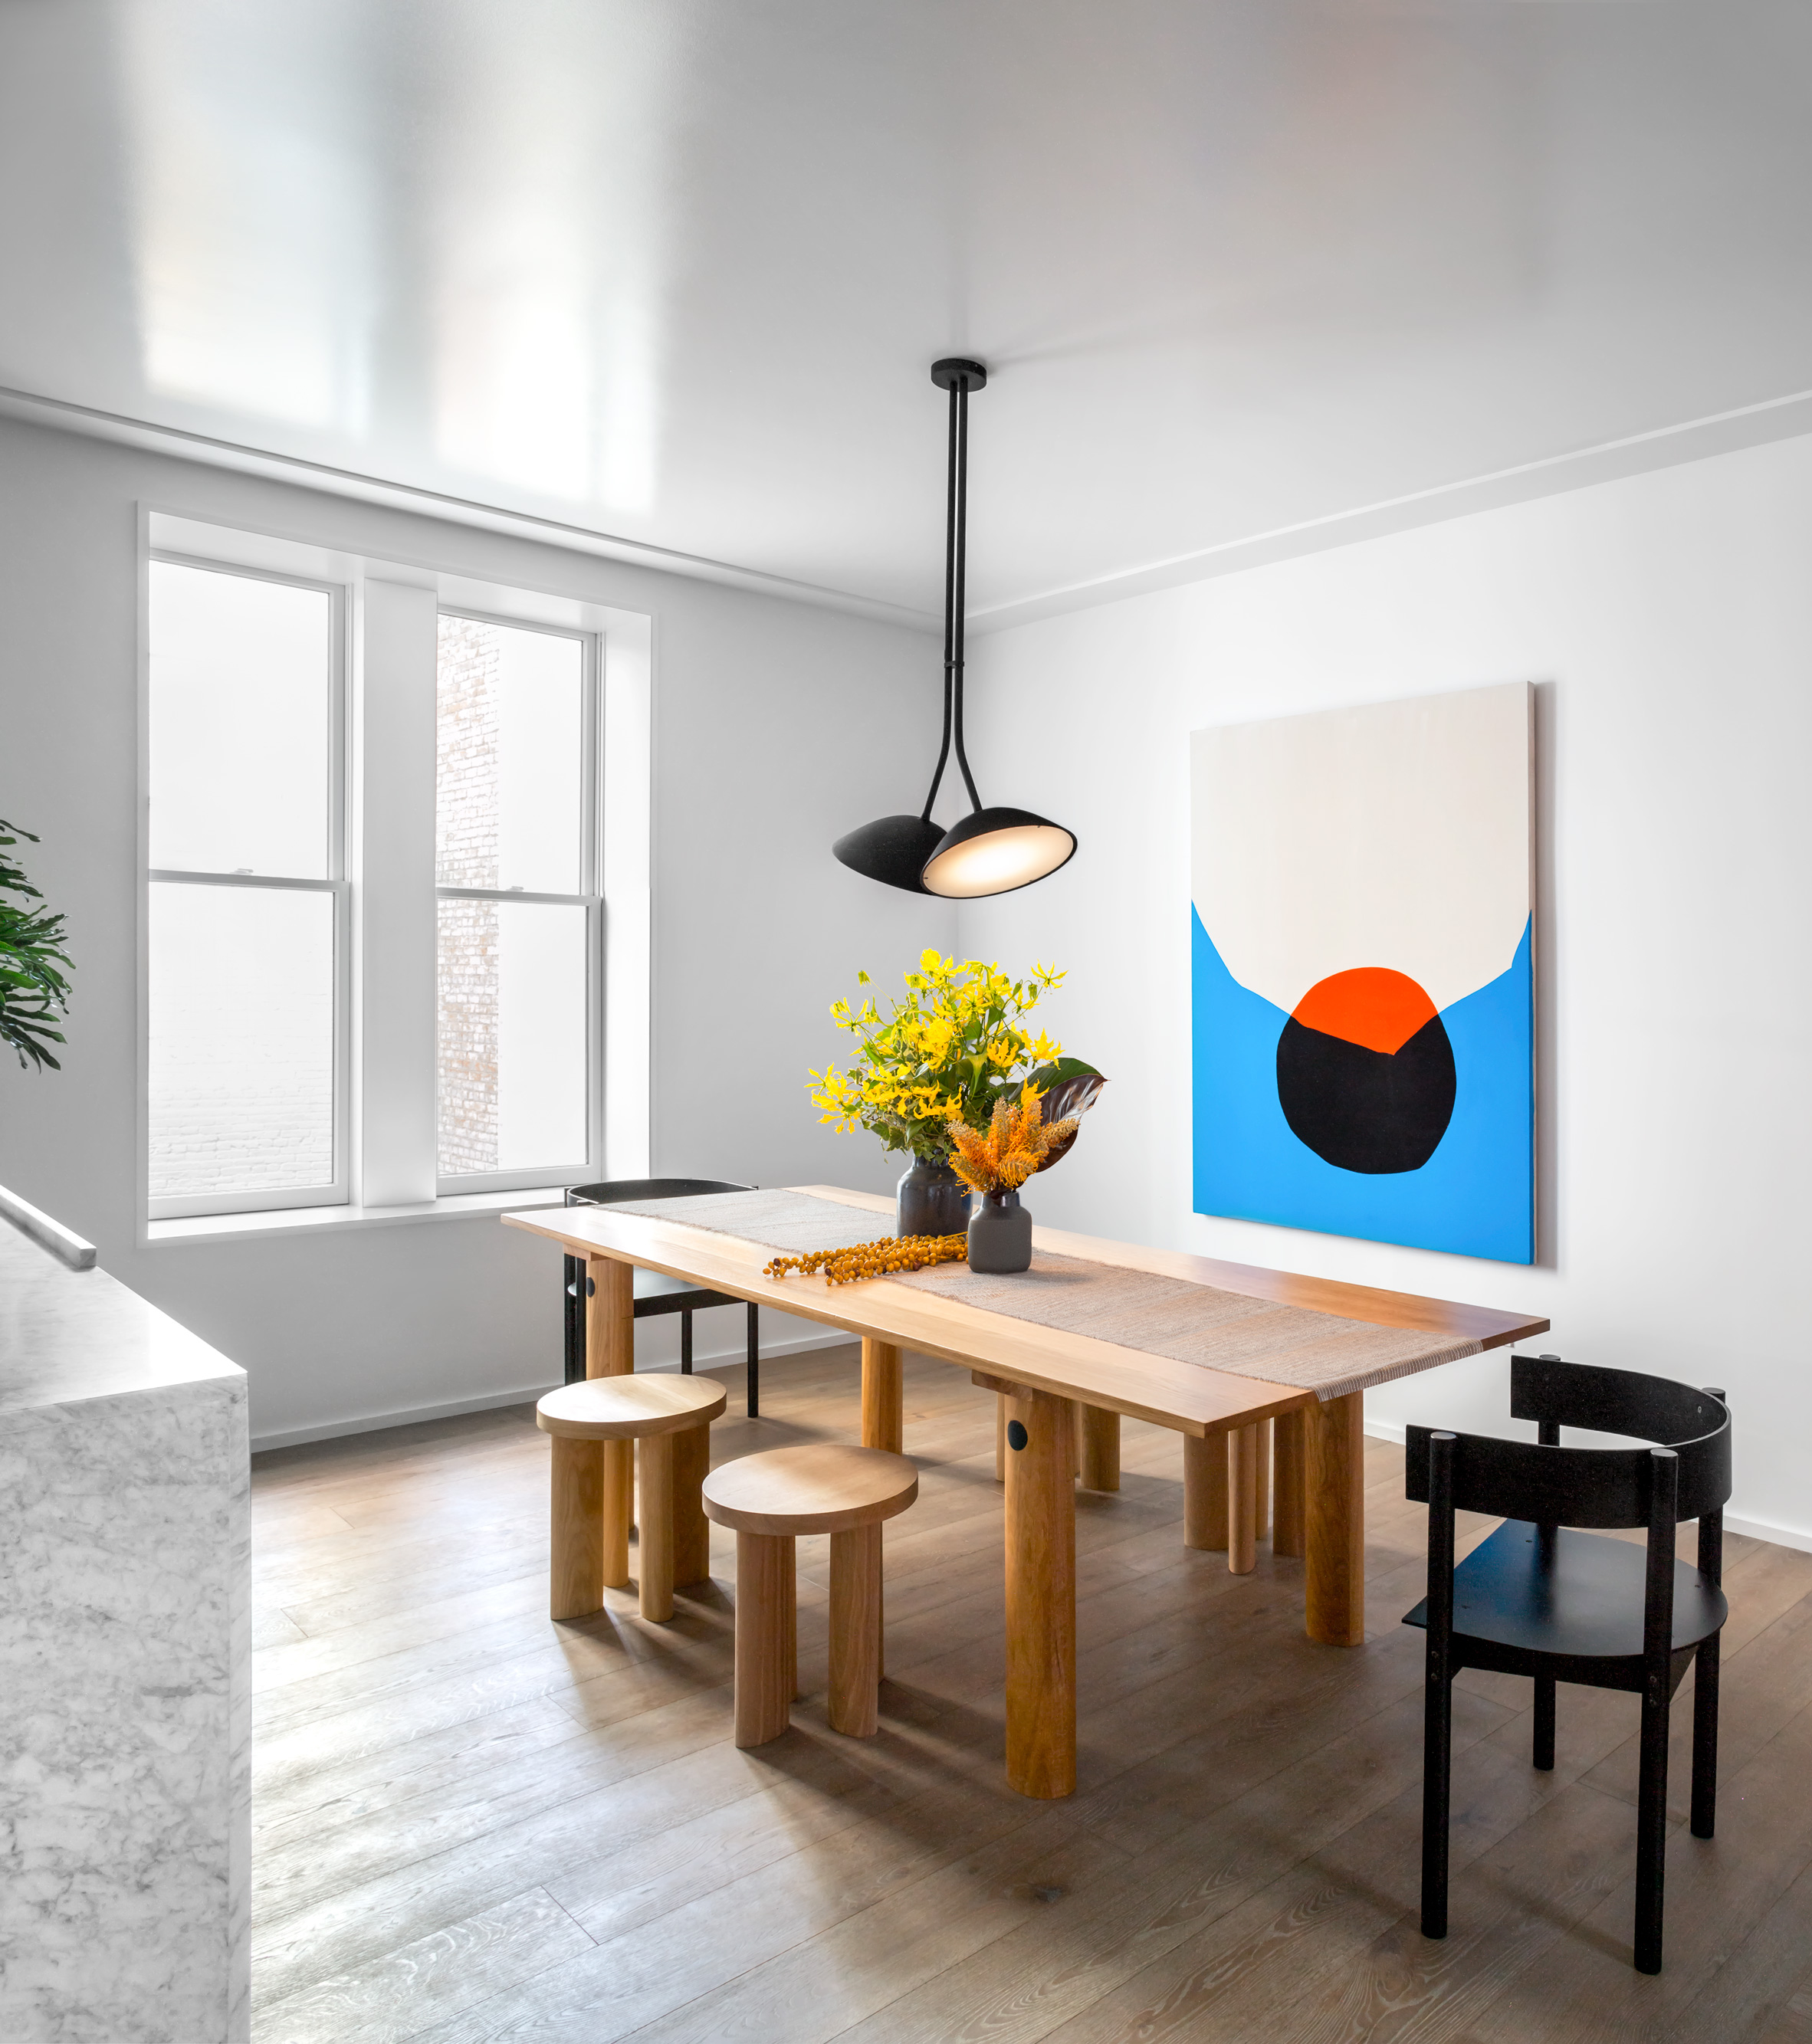 Matter's model apartment at The Standish, Brooklyn